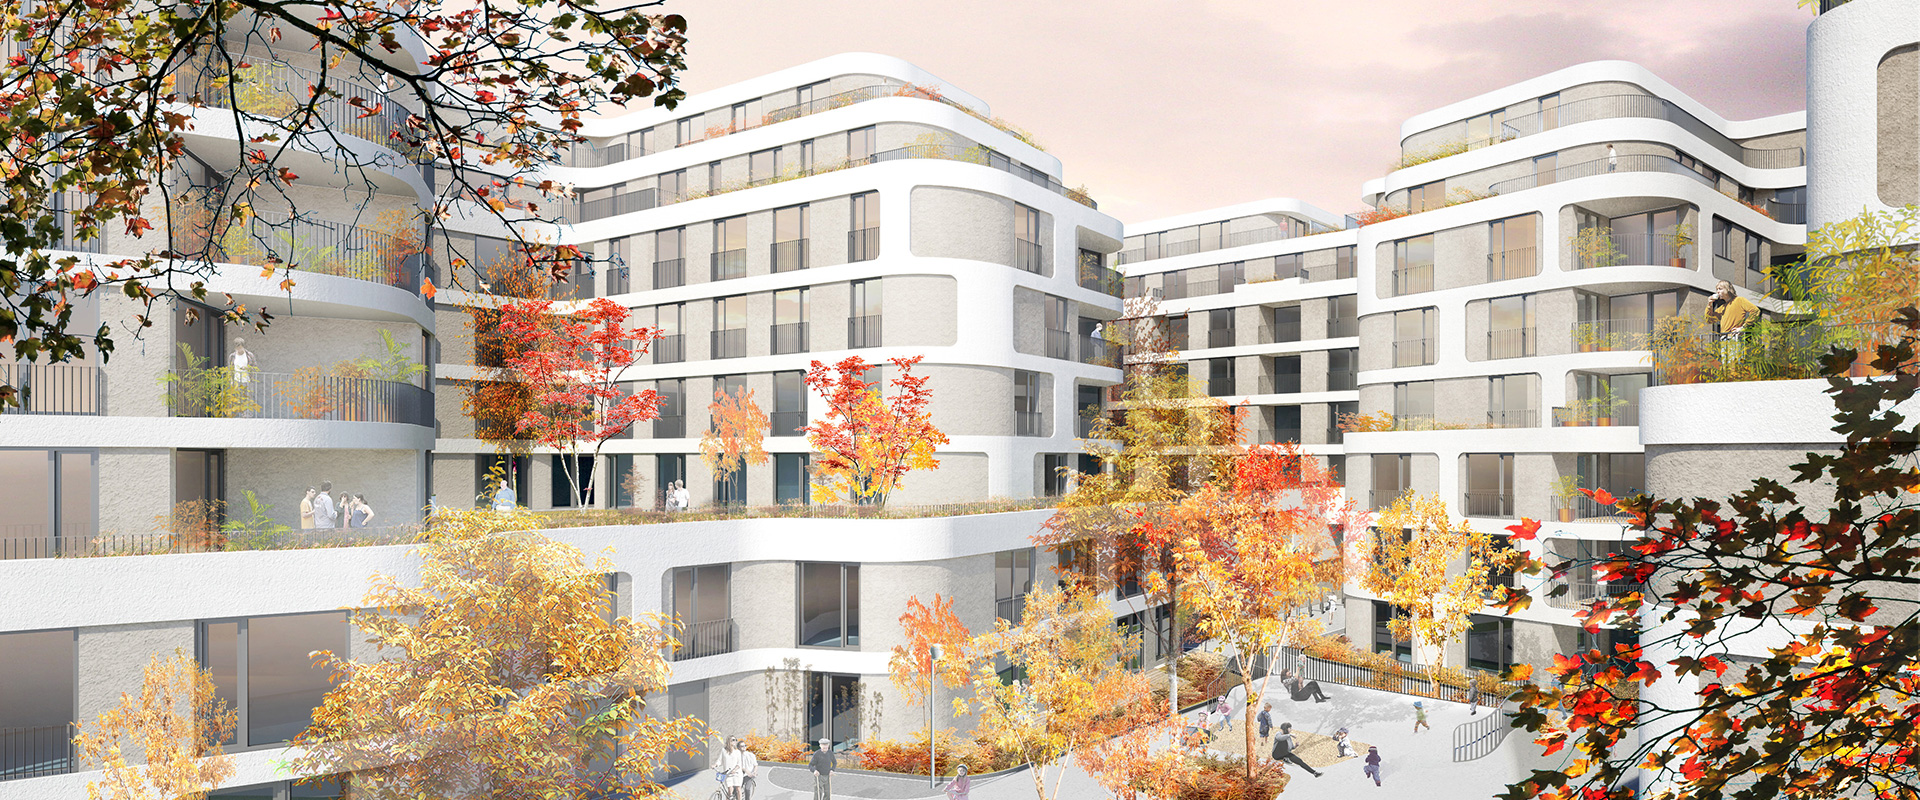 Building project Wohnquartier Pappelallee 45